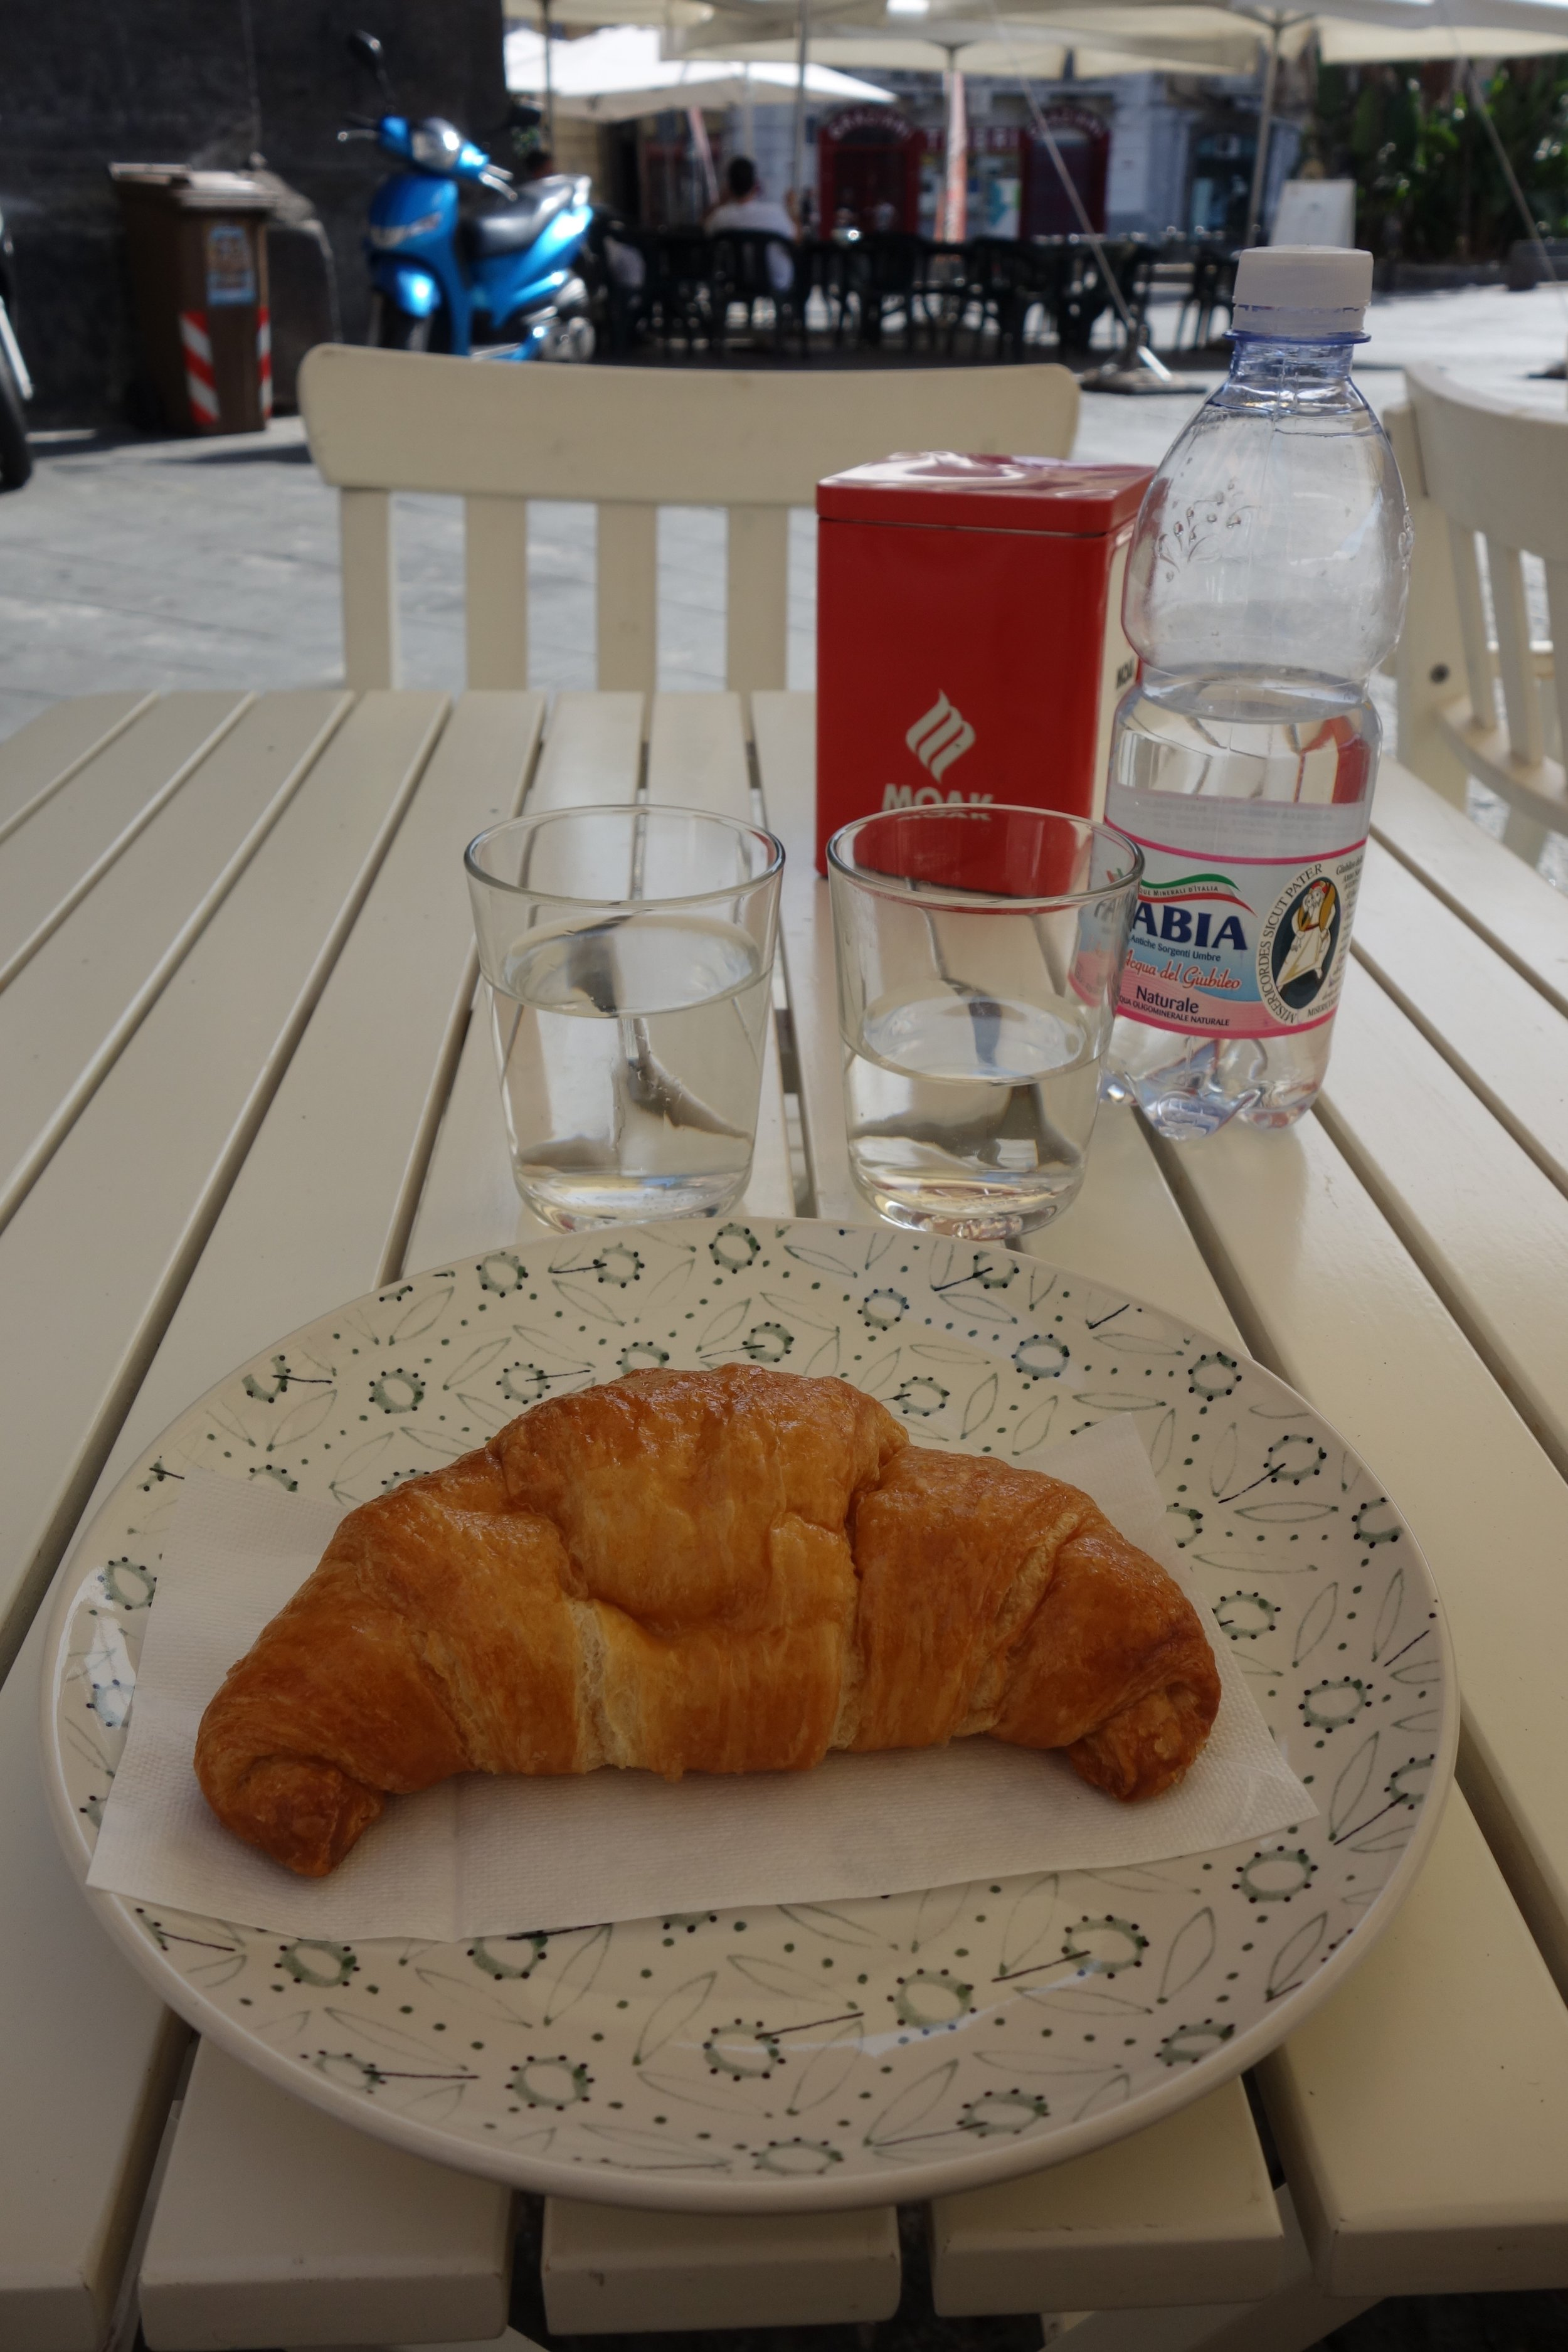 A VEGAN Croissant! OMG...it's the best croissant I've ever had.